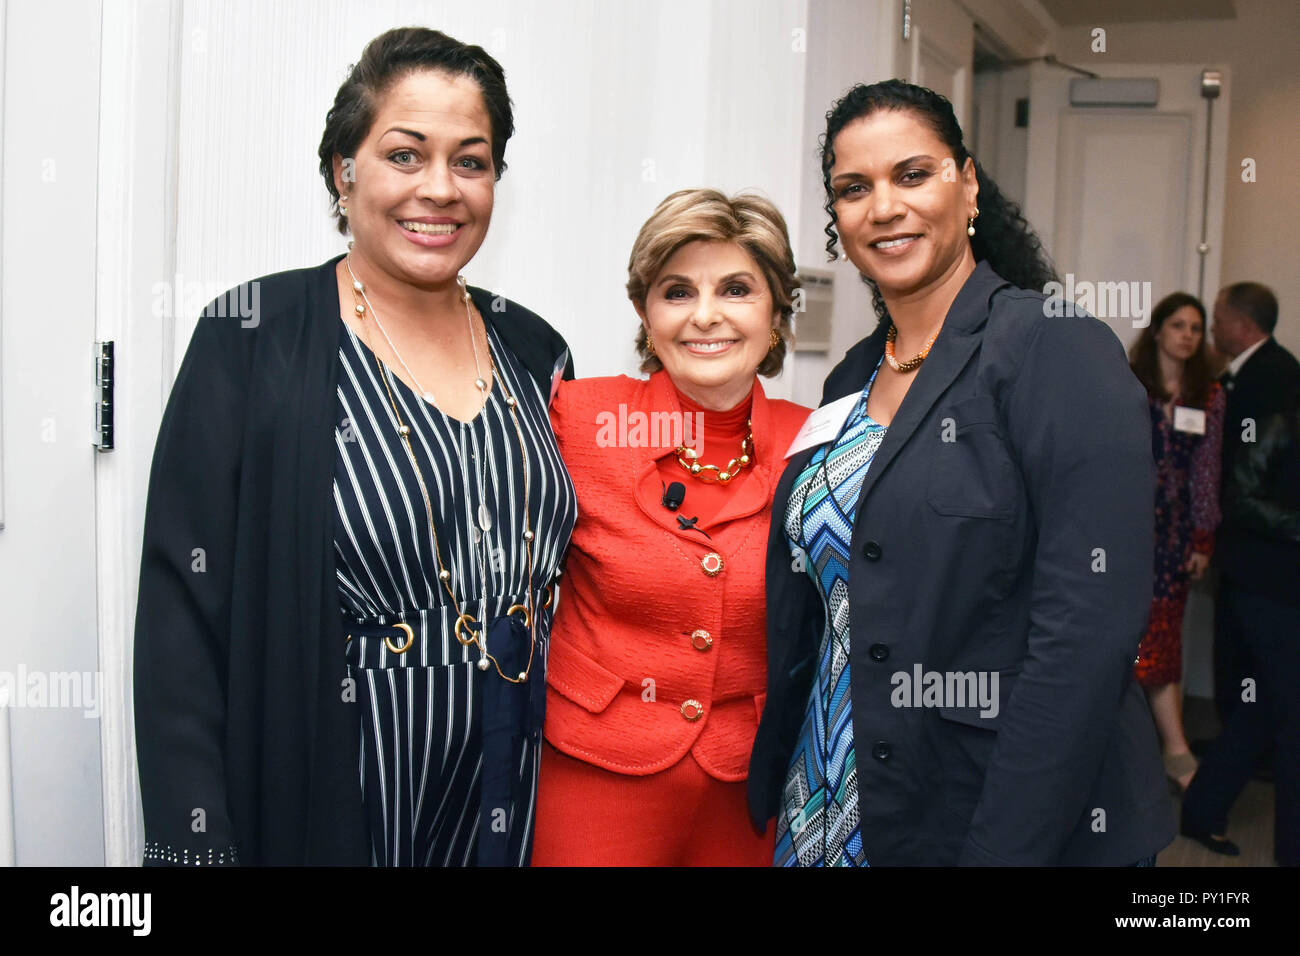 Gloria Allred honoured by women's business organisation The